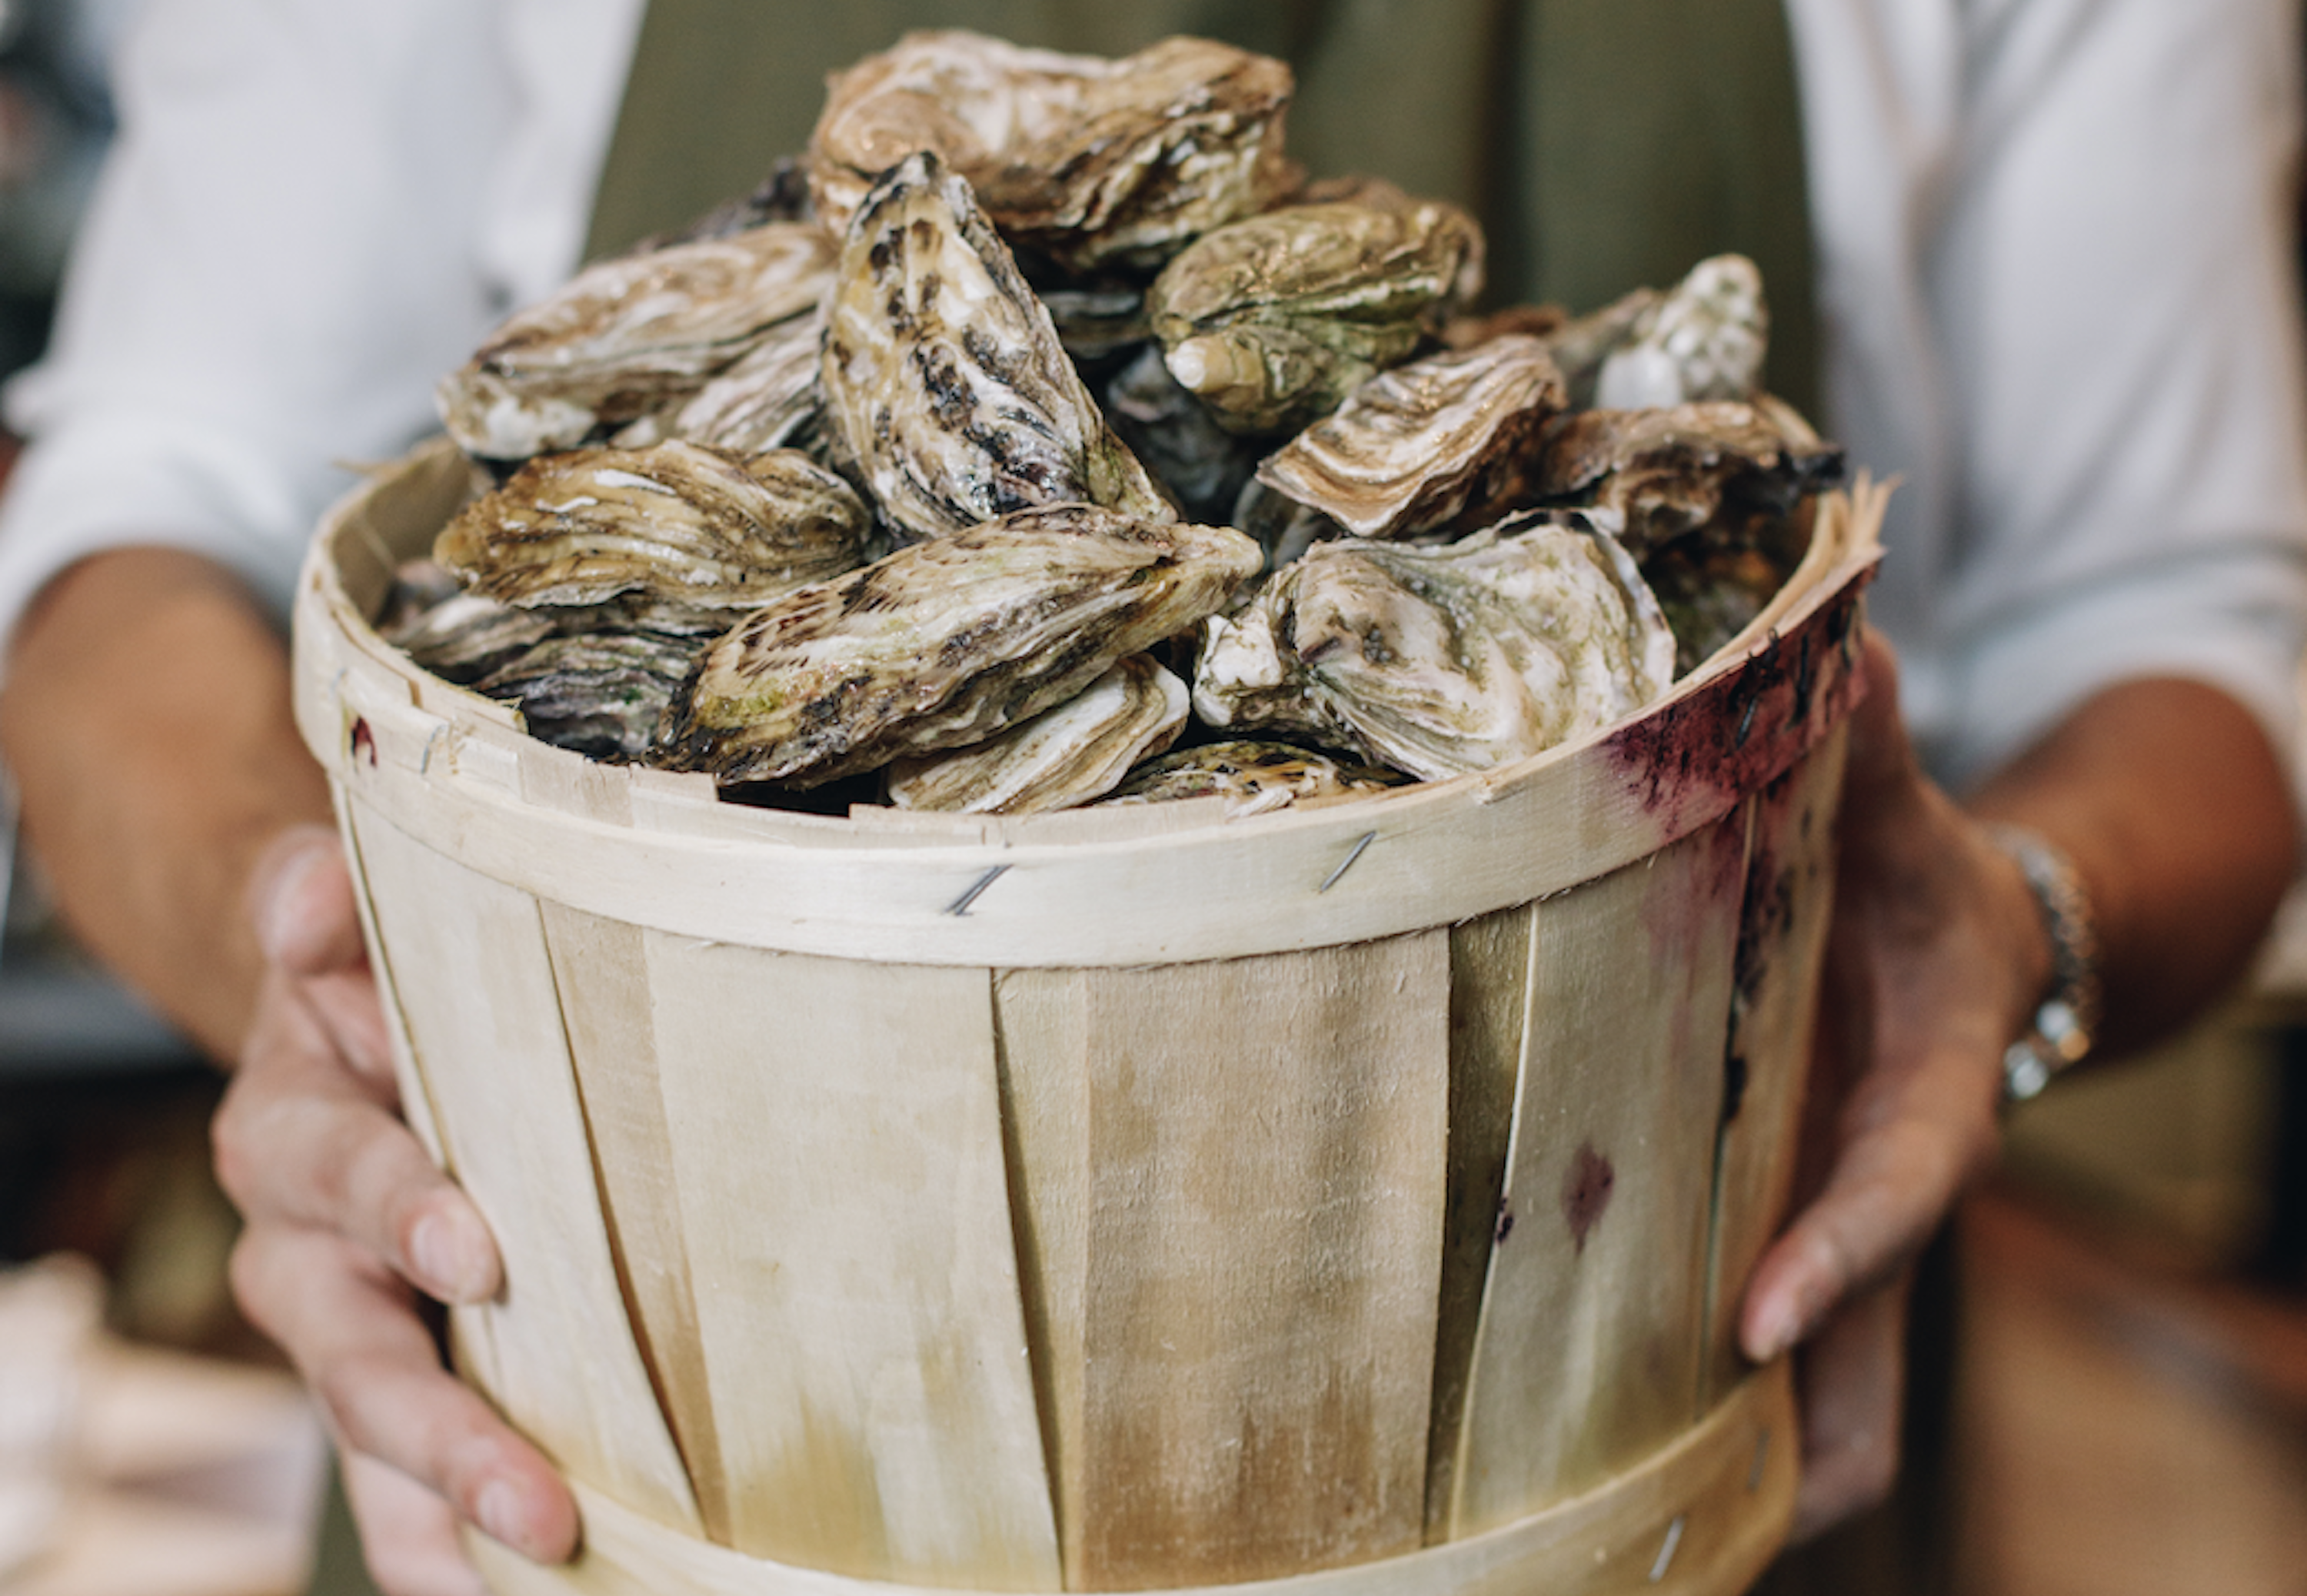 A man in a white shirt and green apron holds out a bucket of oysters in his hands